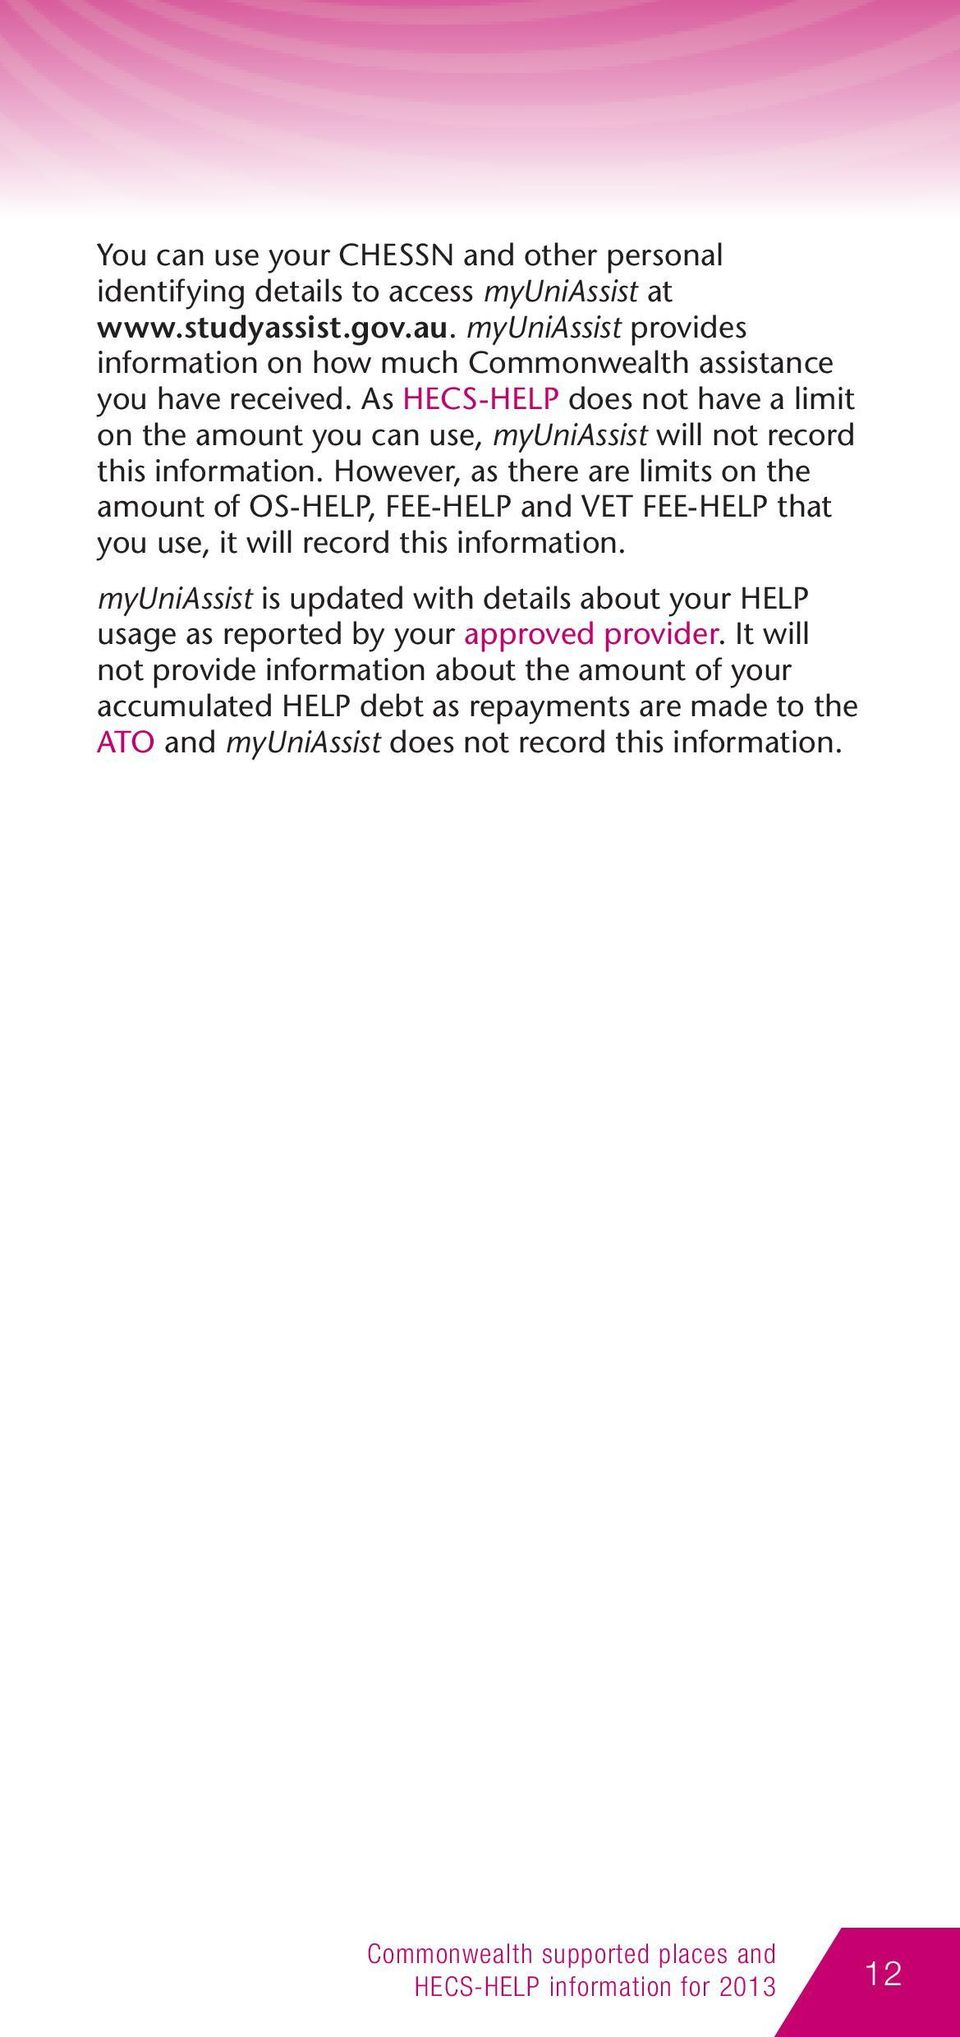 As HECS-HELP does not have a limit on the amount you can use, myuniassist will not record this information.